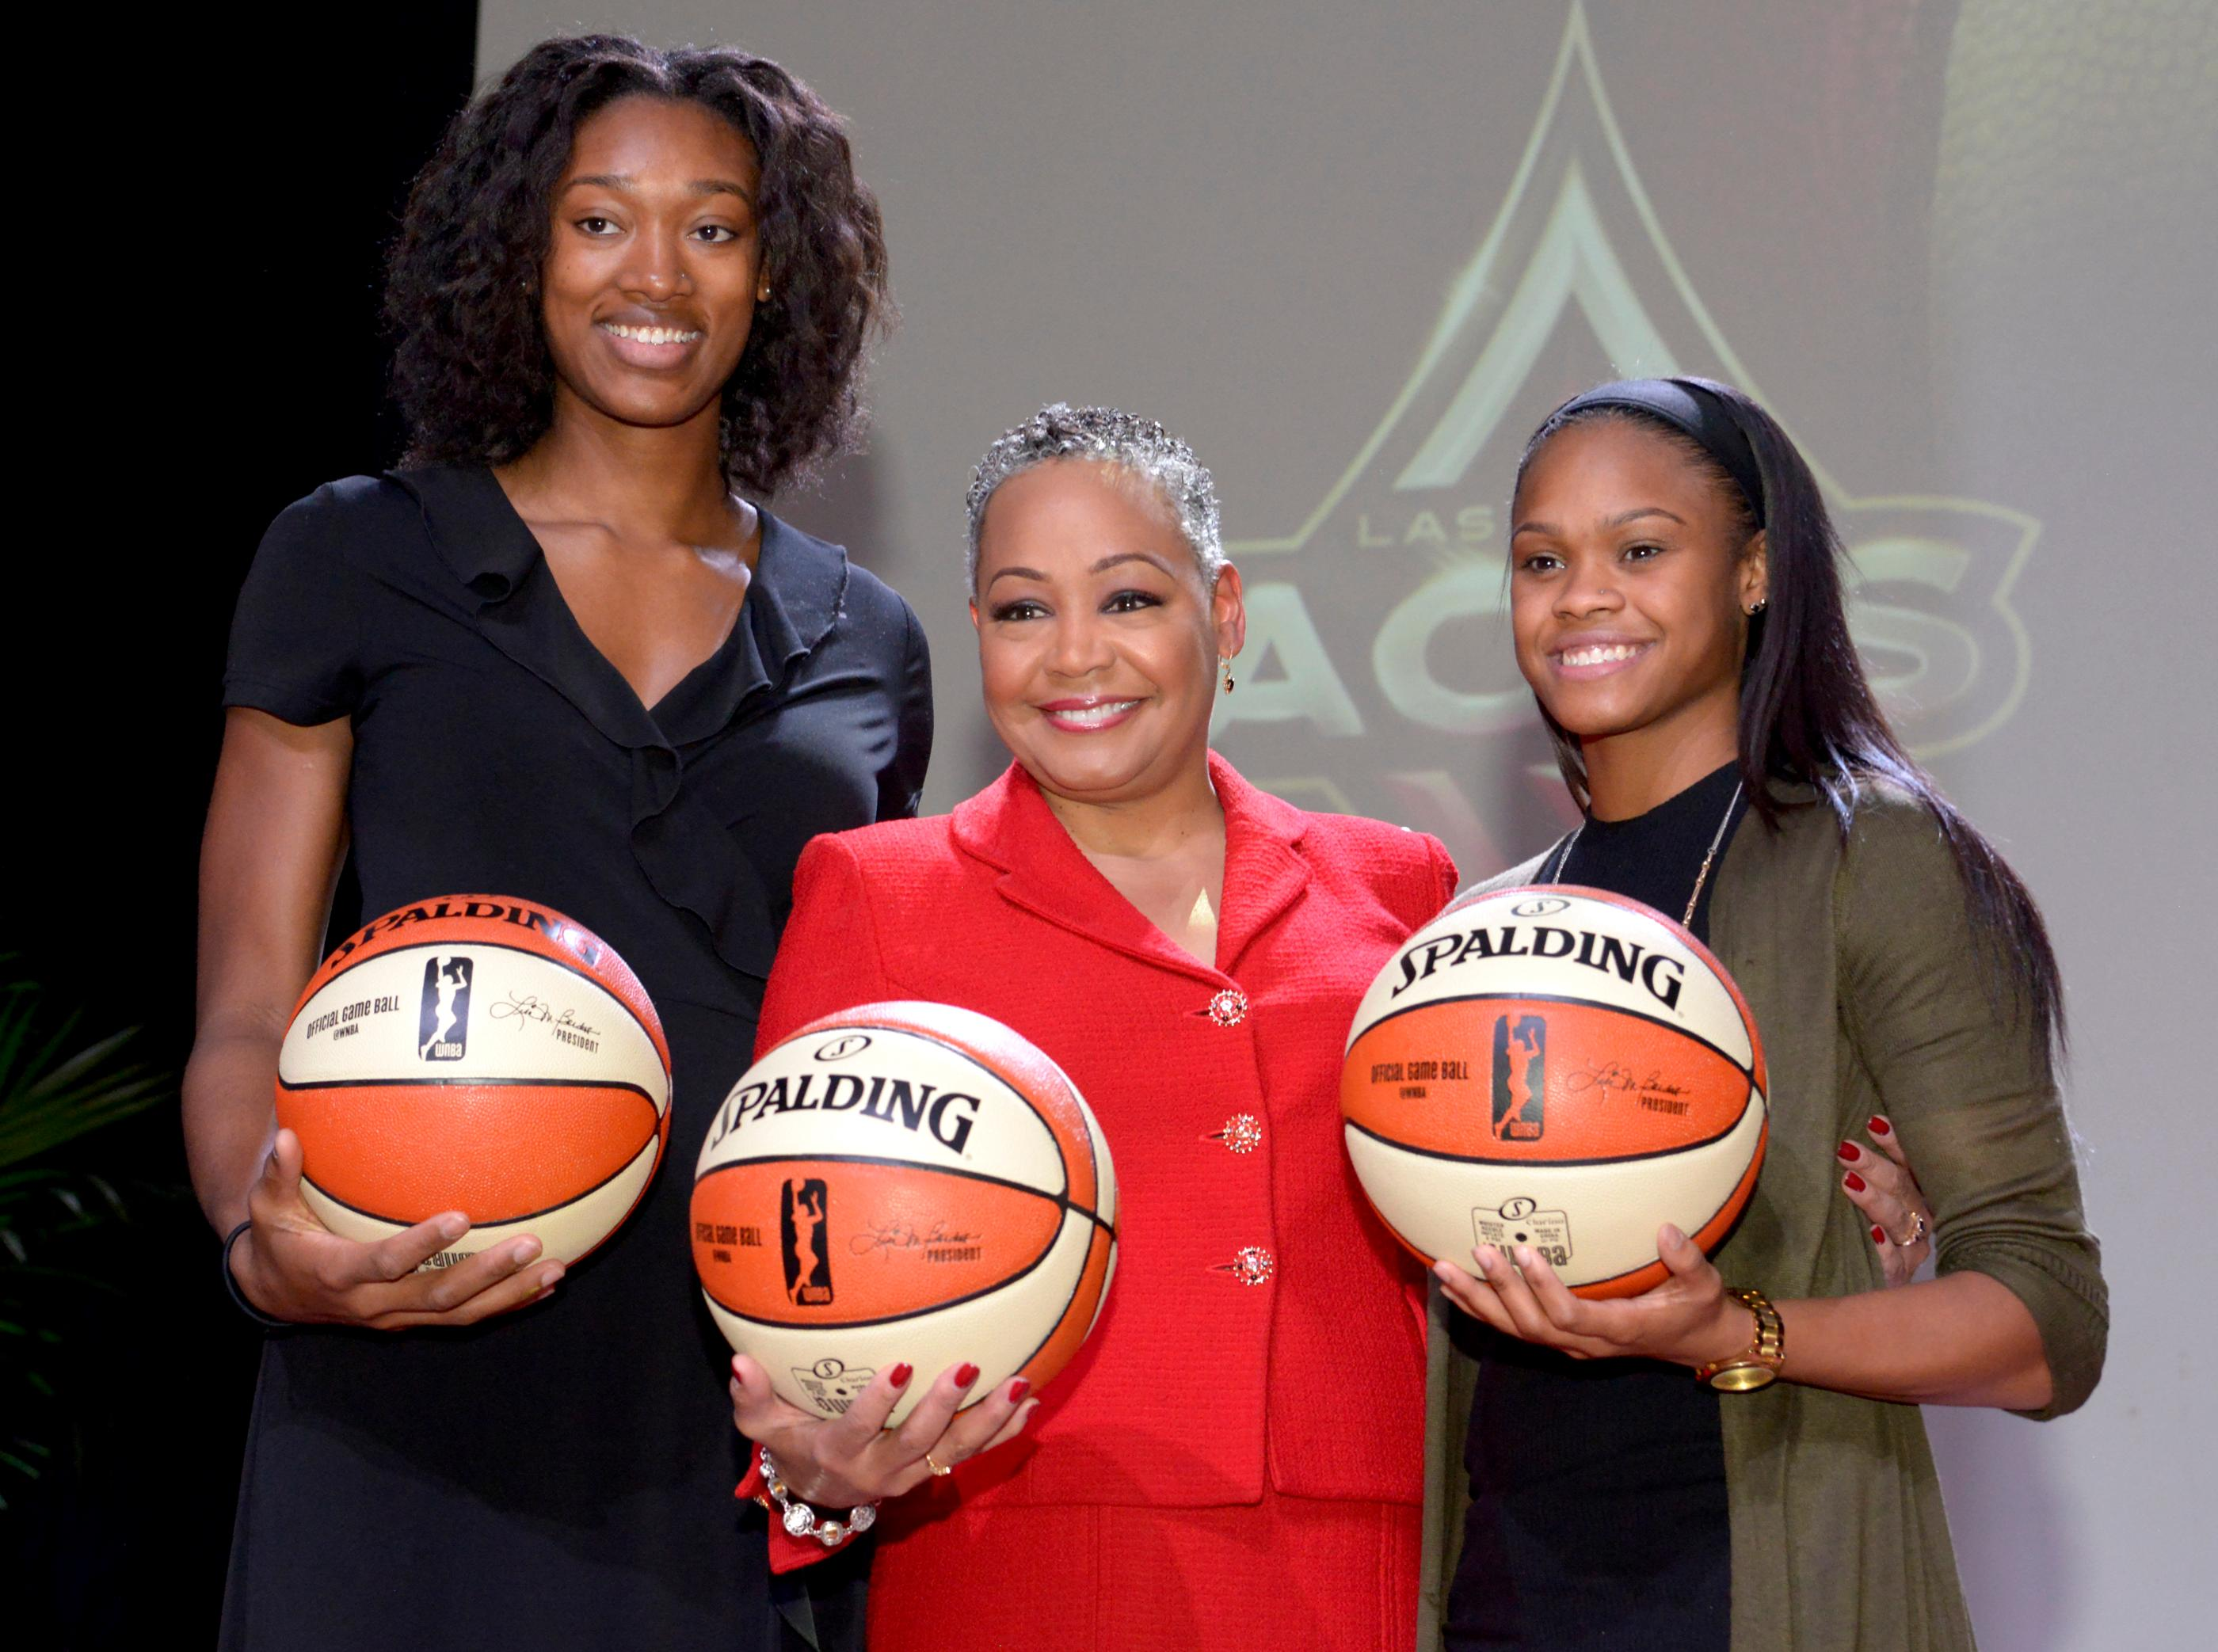 Lisa Borders (c) President of the WNBA poses with Kayla Janine Alexander and Moriah Jefferson, two of the first women drafted for the new team, at the press conference announcing the WNBA Las Vegas Aces as the newest professional sports franchise in Las Vegas at Mandalay Bay. Monday, December 11, 2017. CREDIT: Glenn Pinkerton/Las Vegas News Bureau